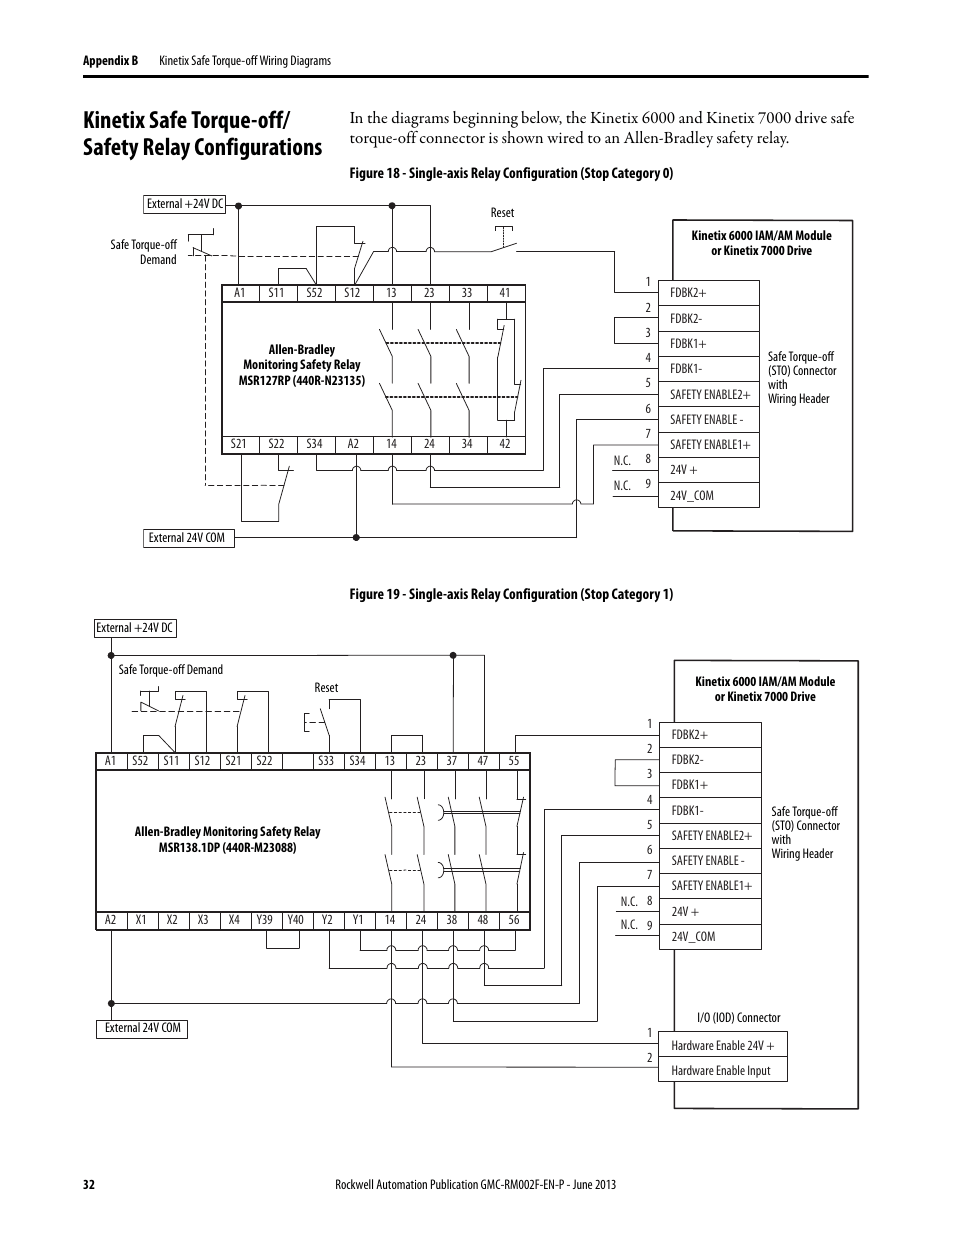 rockwell automation 2099 bmxx s kinetix safe torque off feature safety reference manual page32?resize=665%2C861 rockwell wiring diagram internet of things diagrams, electrical rockwell automation wiring diagrams at fashall.co